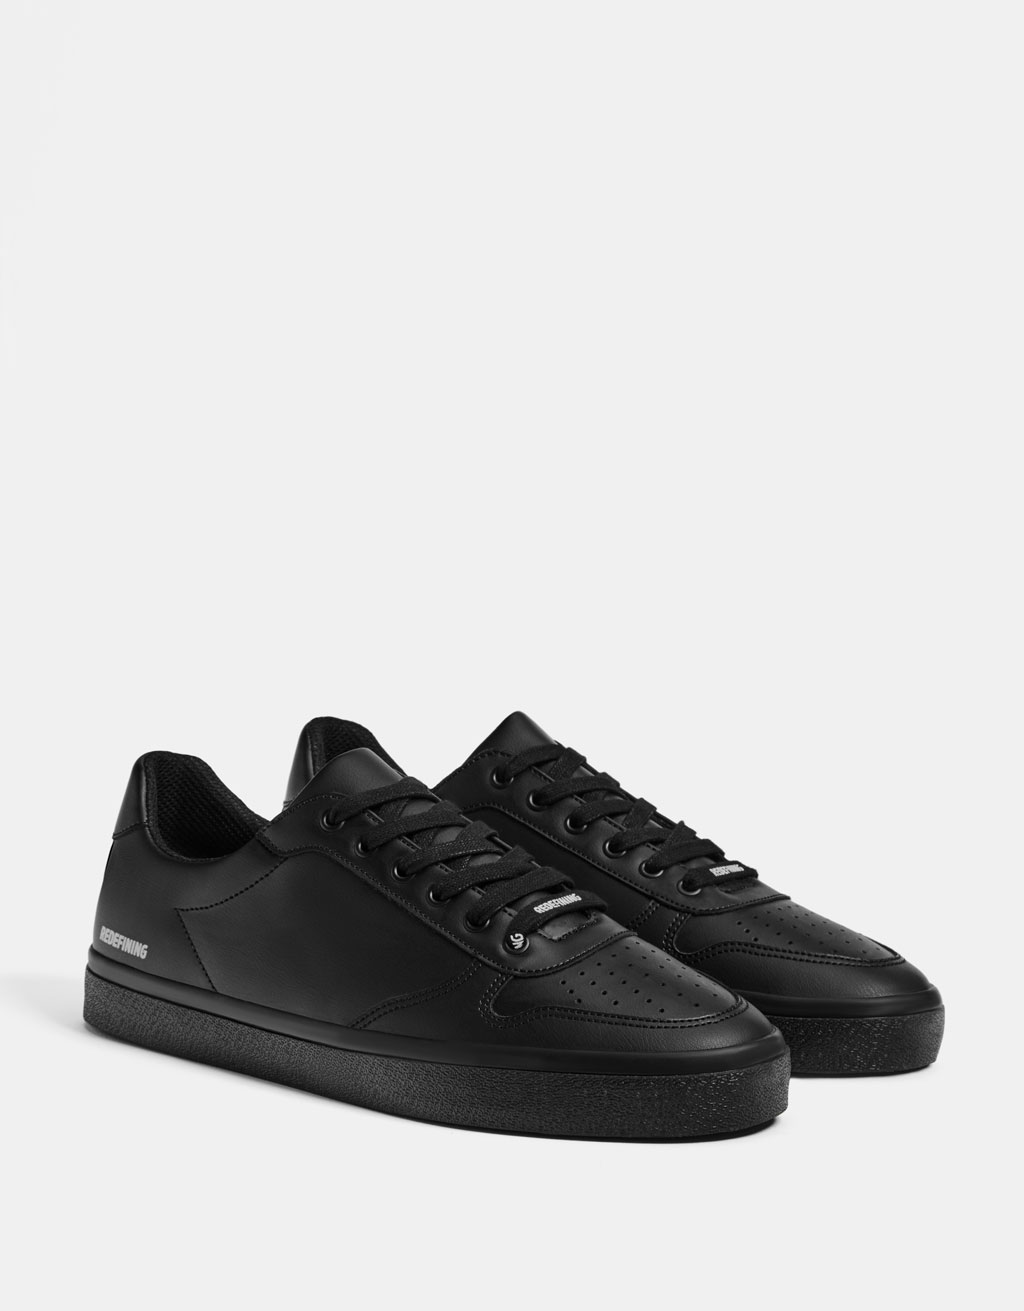 Men's black monochrome sneakers with slogan